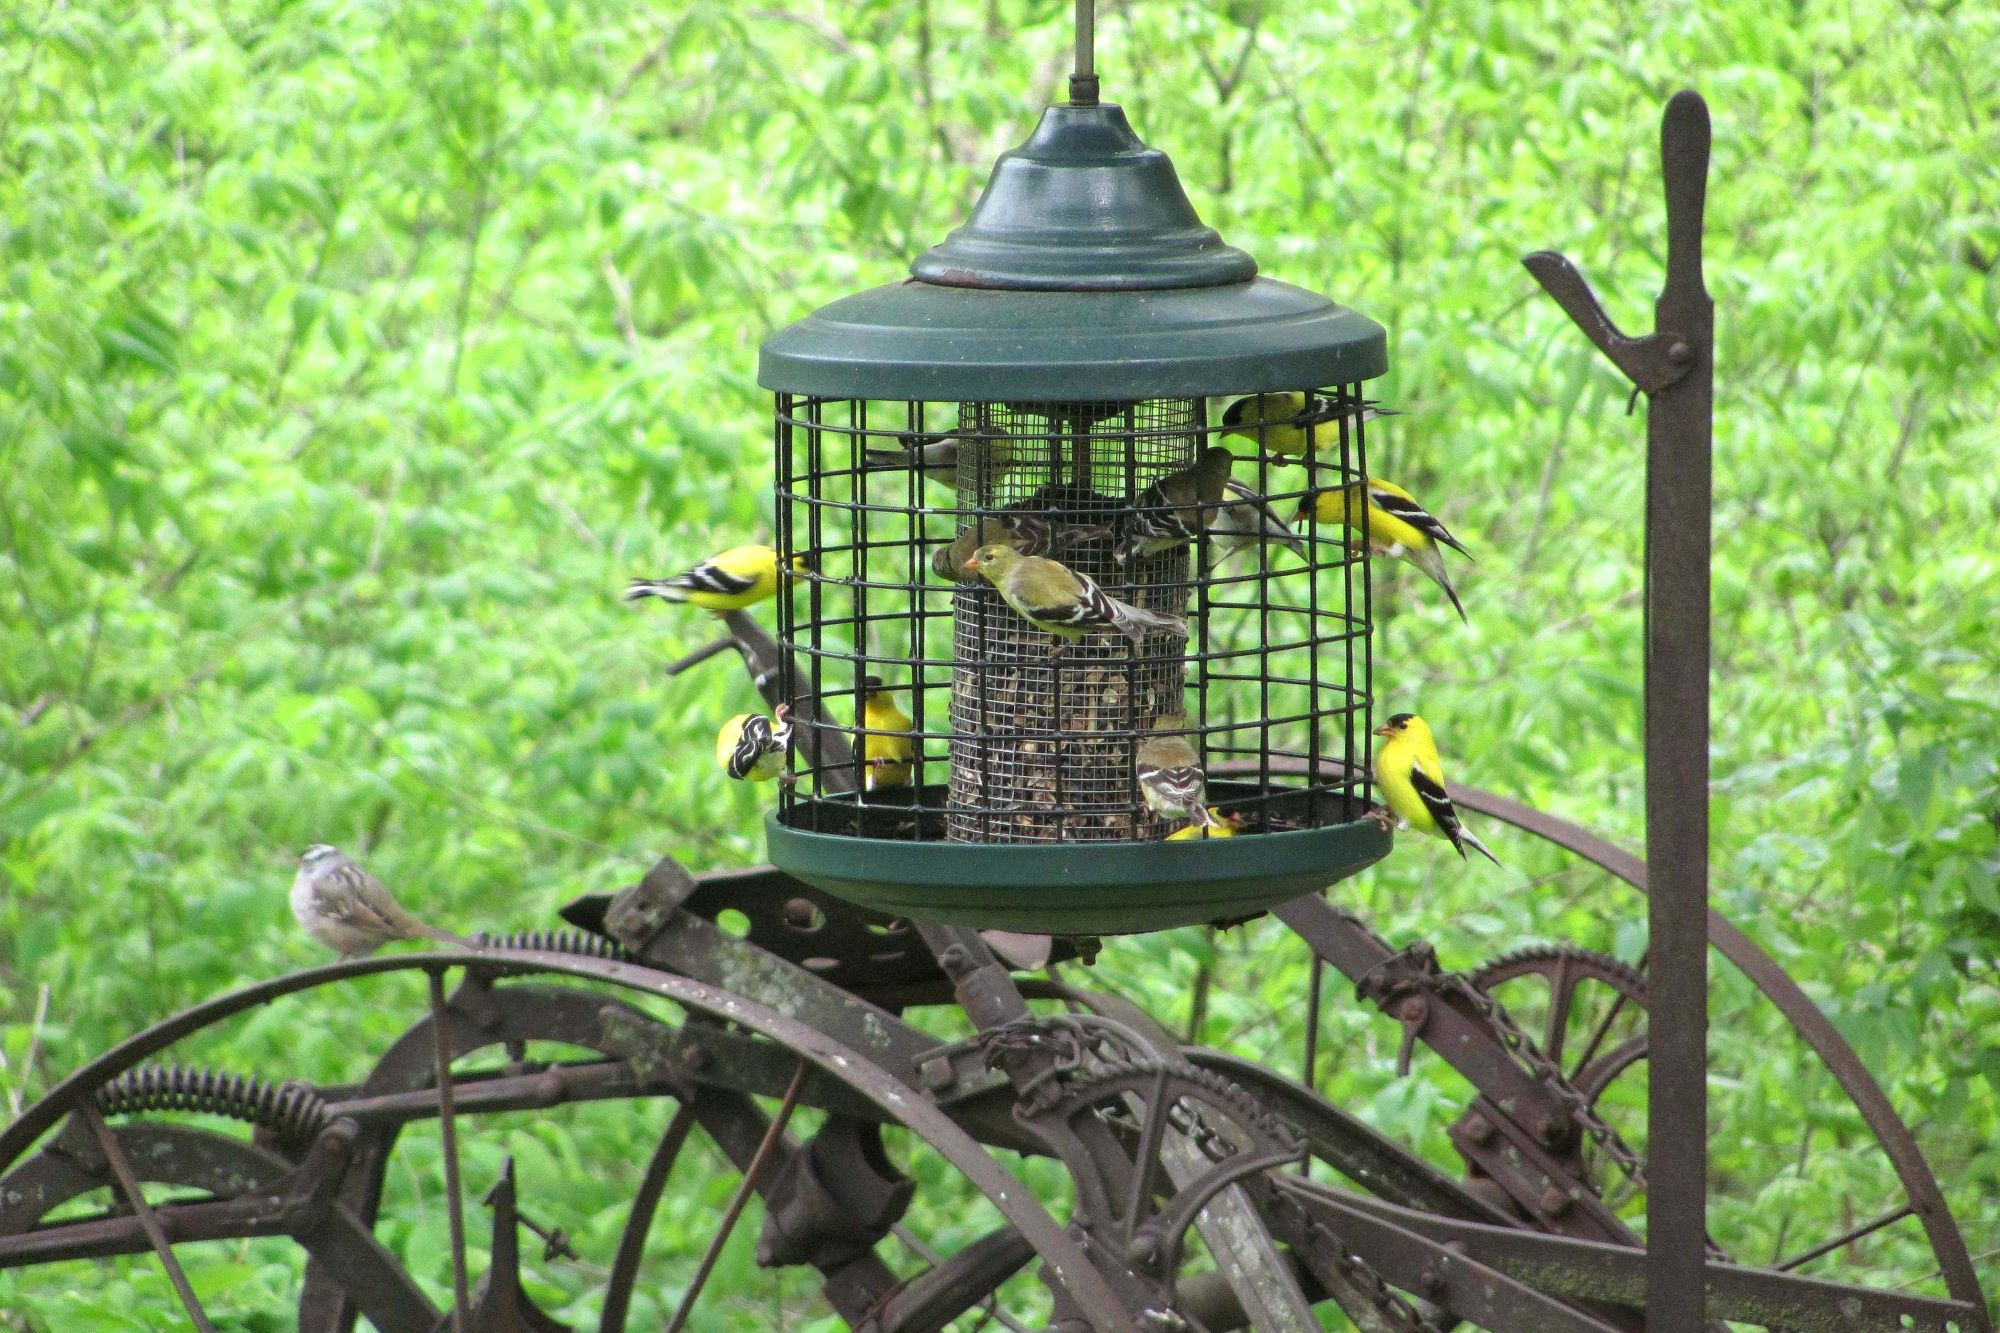 Finches at a caged bird feeder